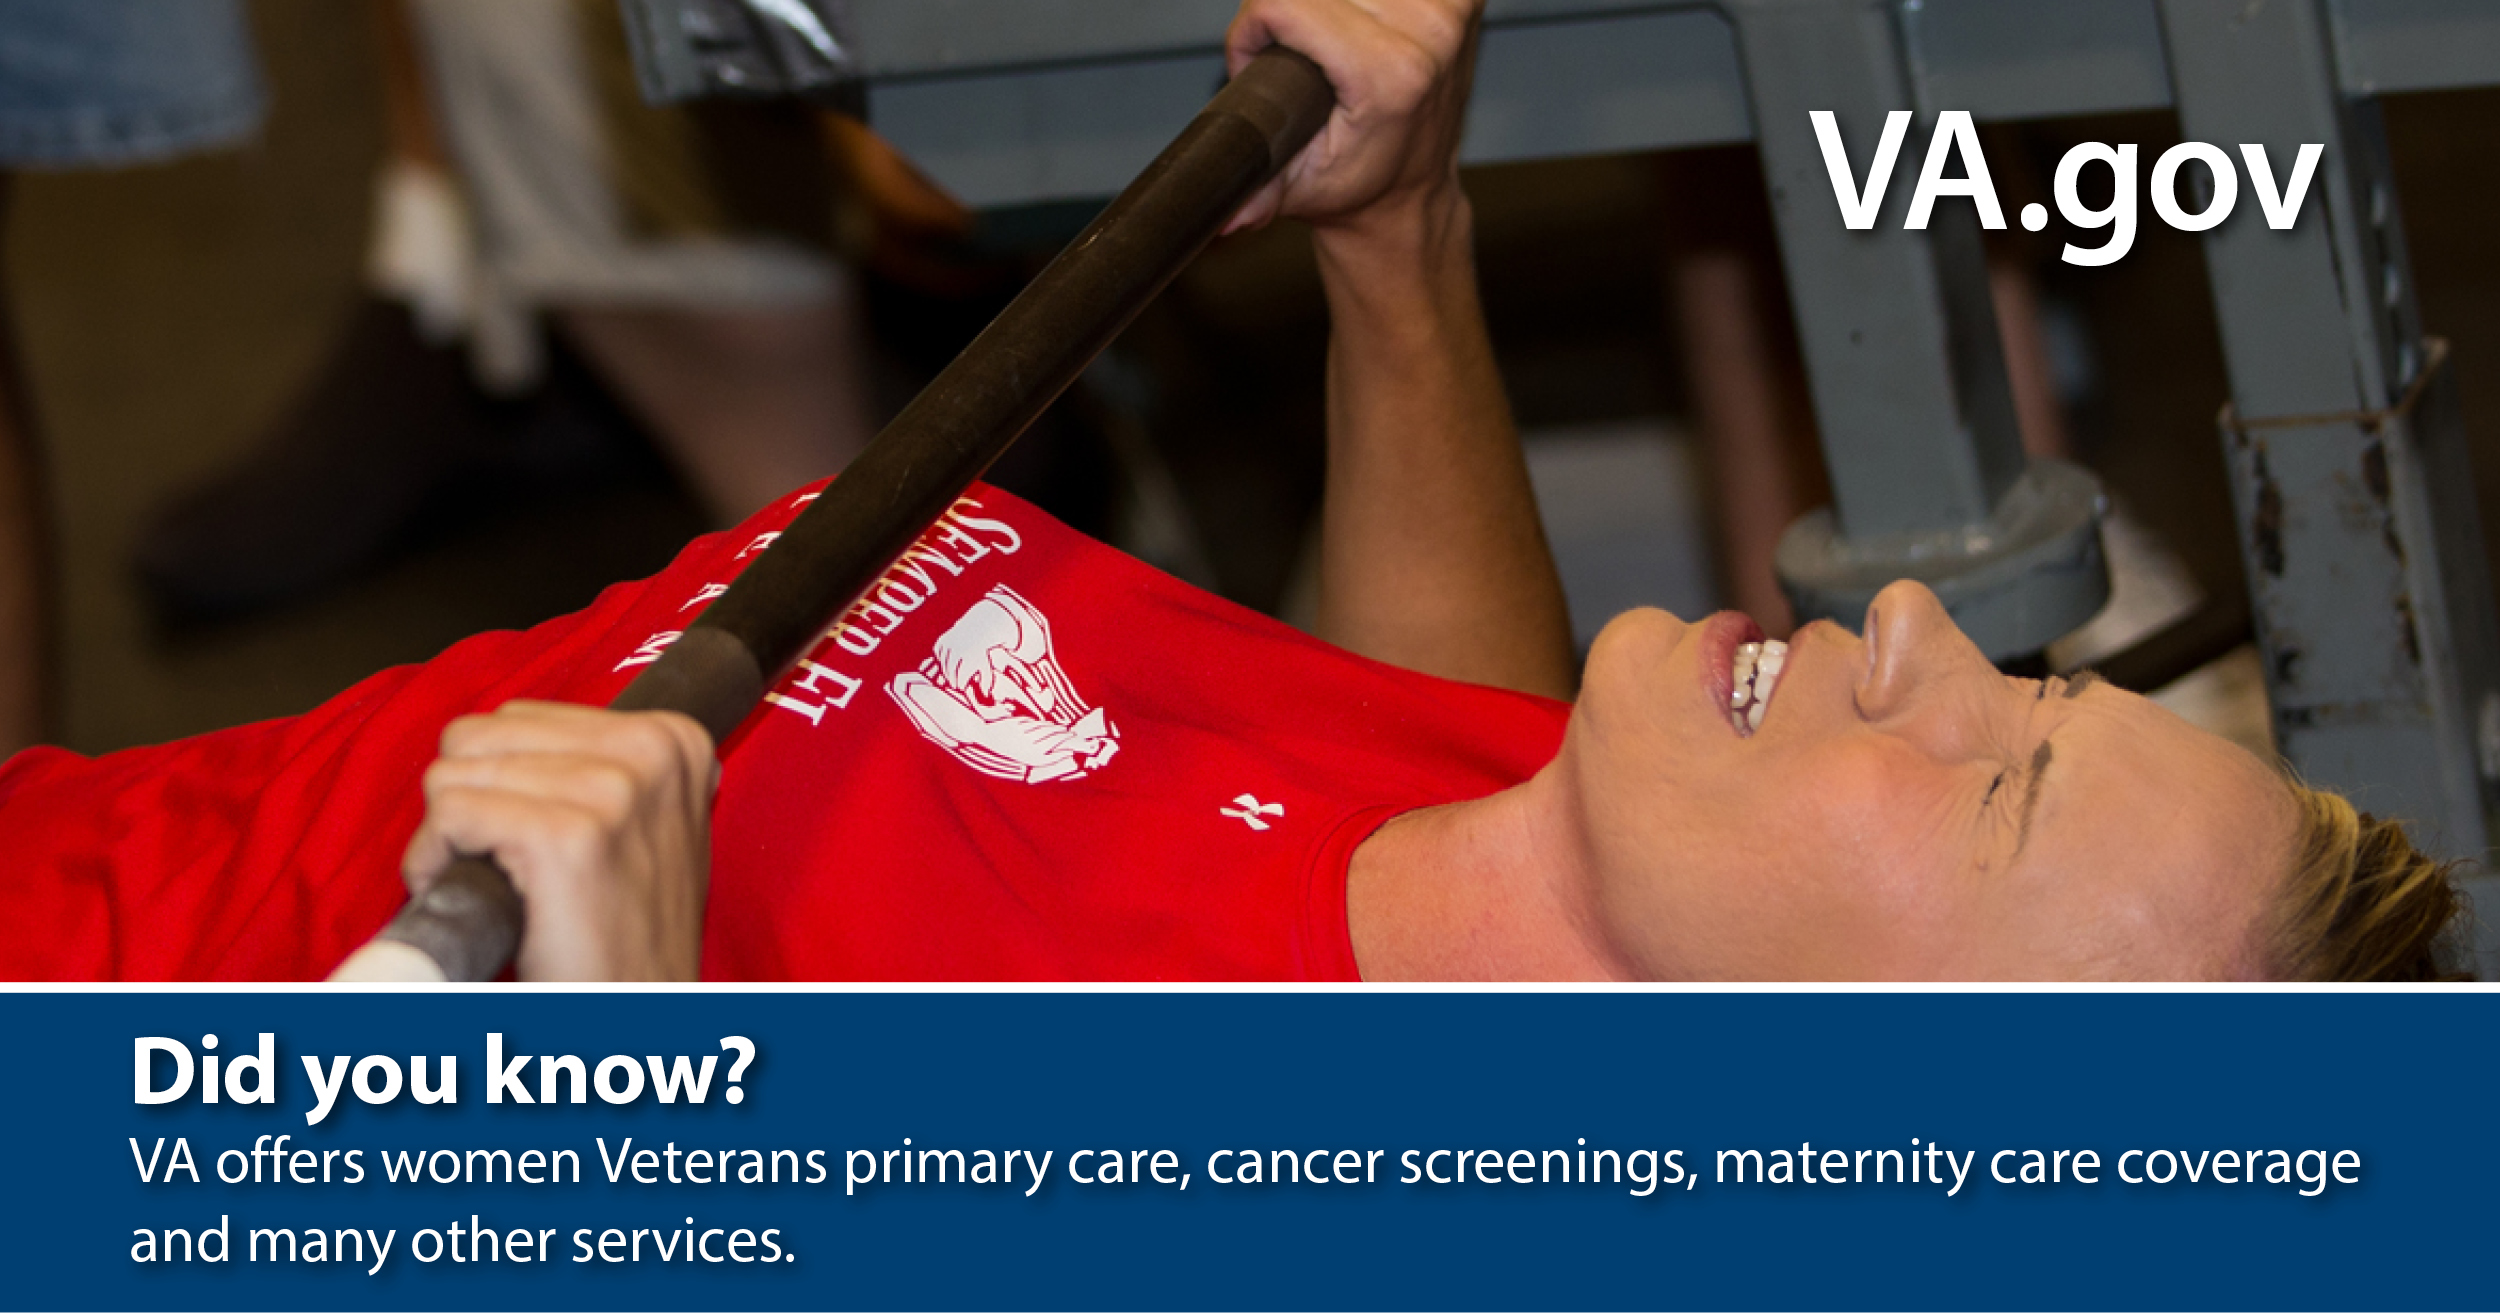 DId you know? VA offers women Veterans primary care, cancer screenings, maternity care coverages and many other services.